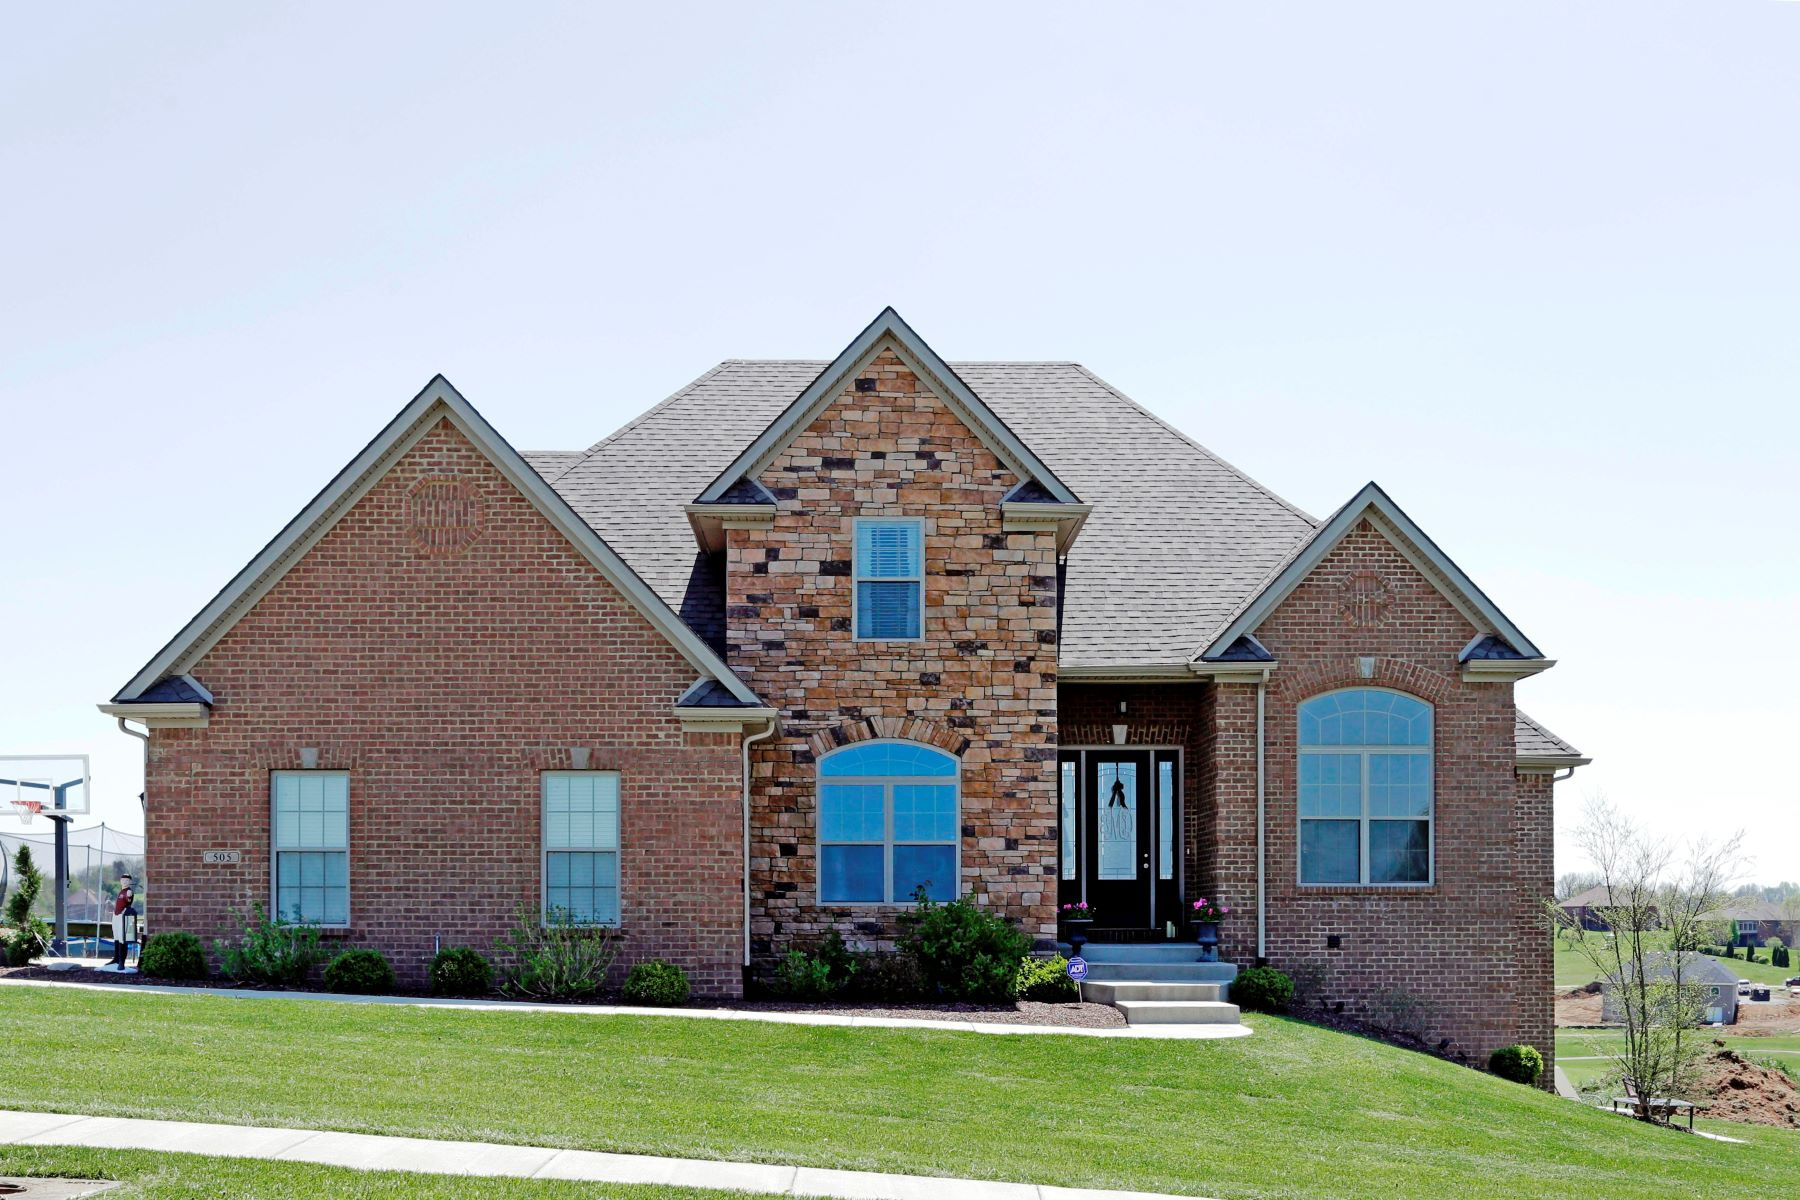 Single Family Home for Sale at 505 Spyglass Hill Drive 505 Spyglass Hill Drive Richmond, Kentucky 40475 United States